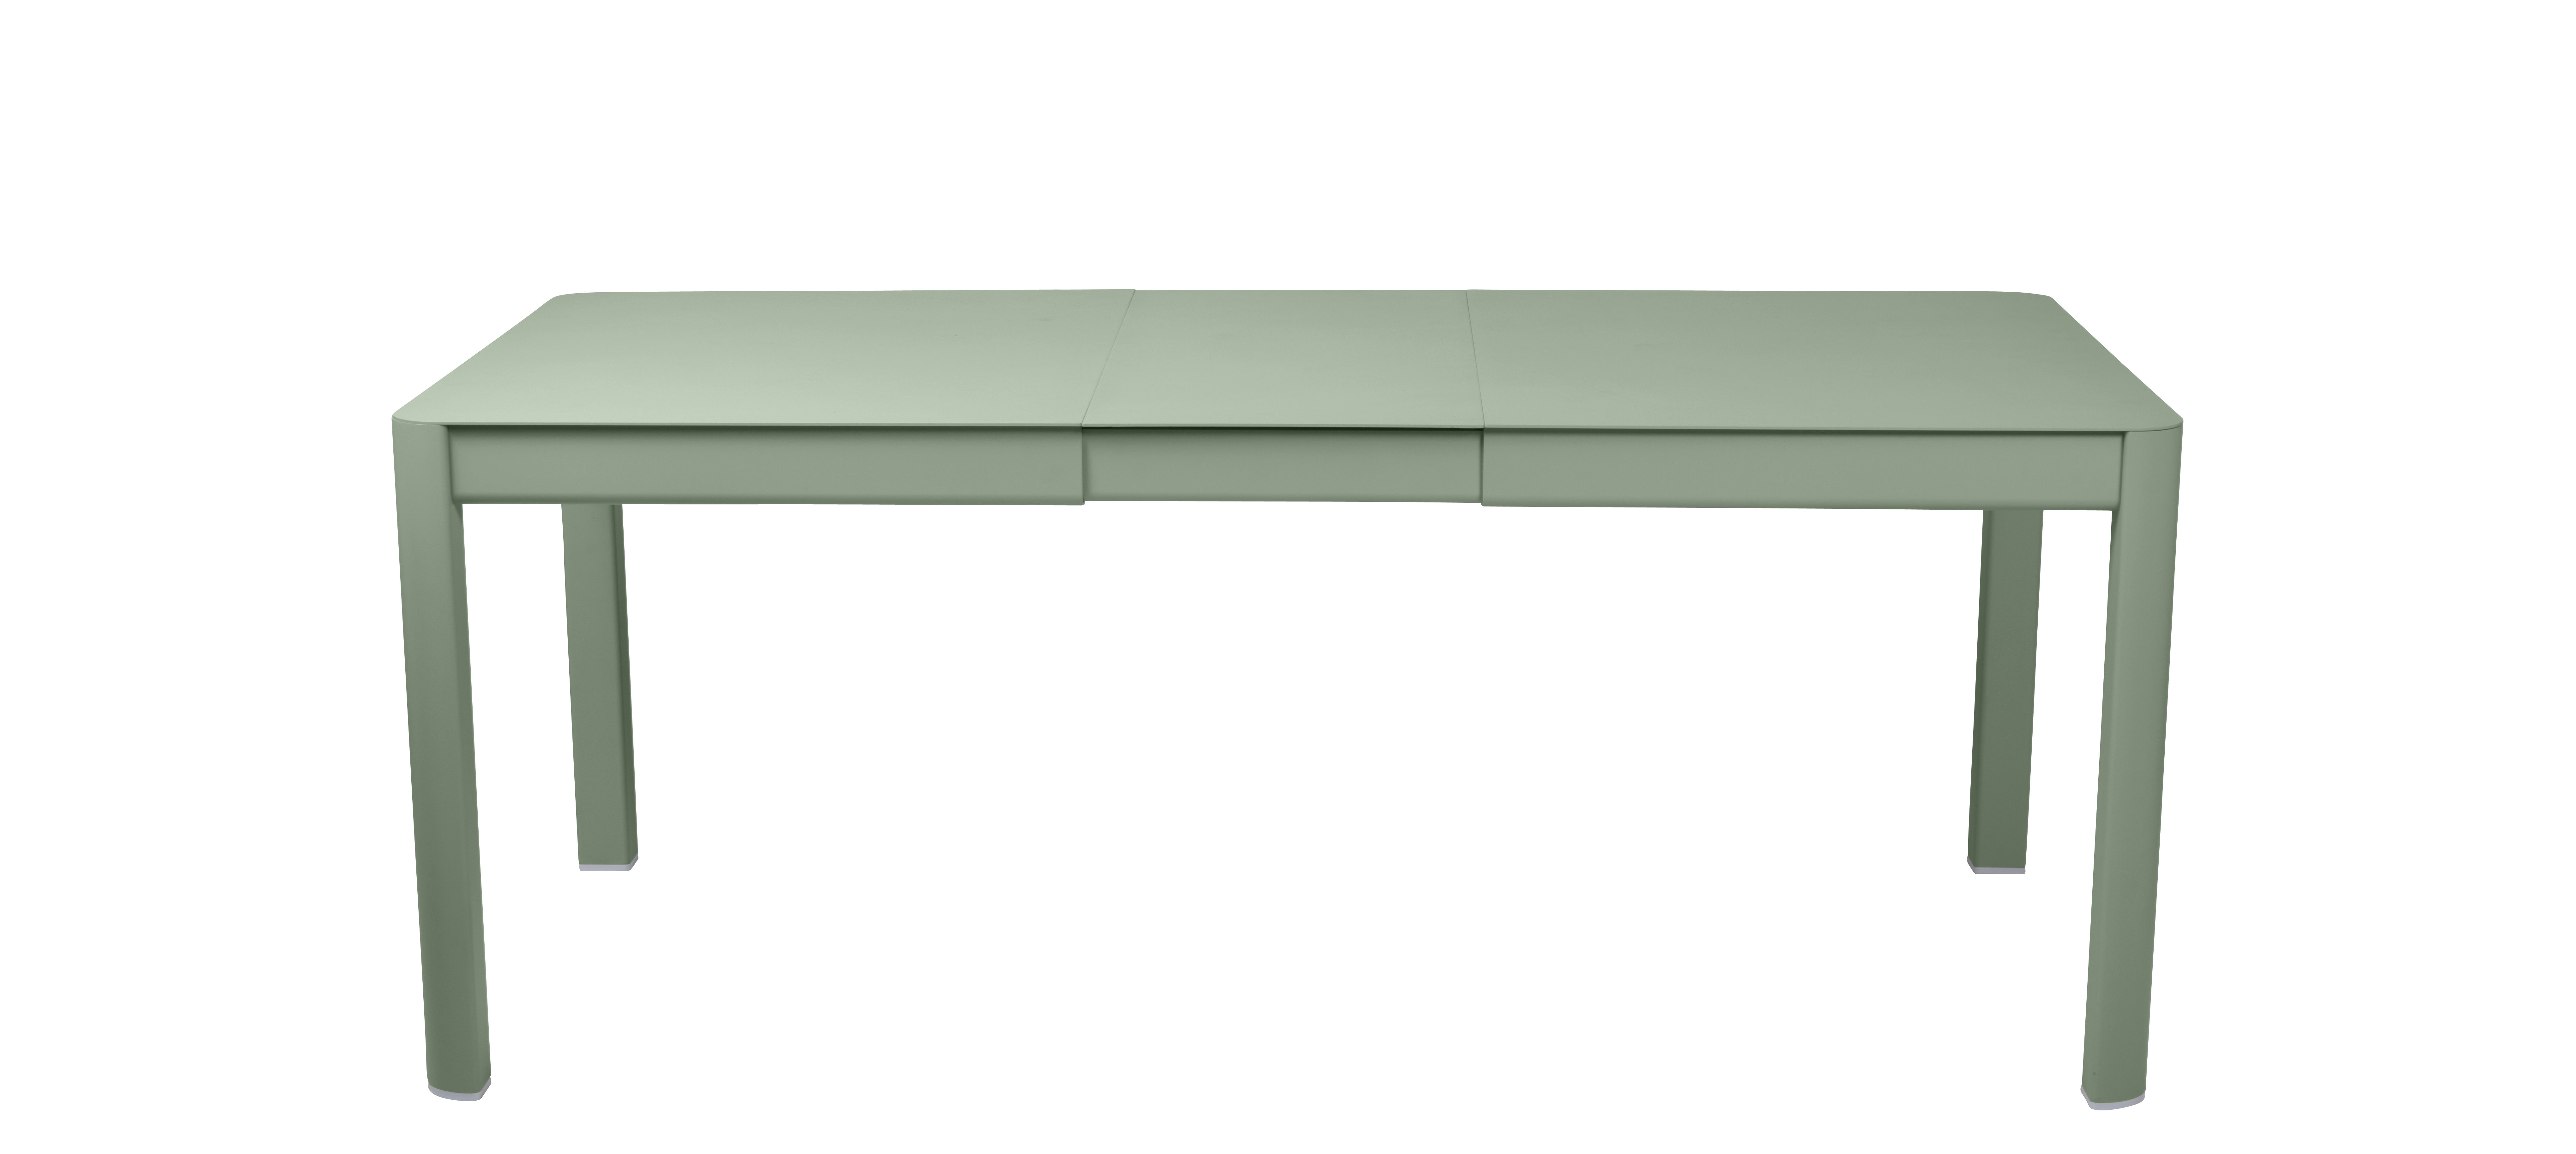 Outdoor - Garden Tables - Ribambelle Small Extending table - / L 149 to 191 cm - 6 to 8 people by Fermob - Cactus - Aluminium